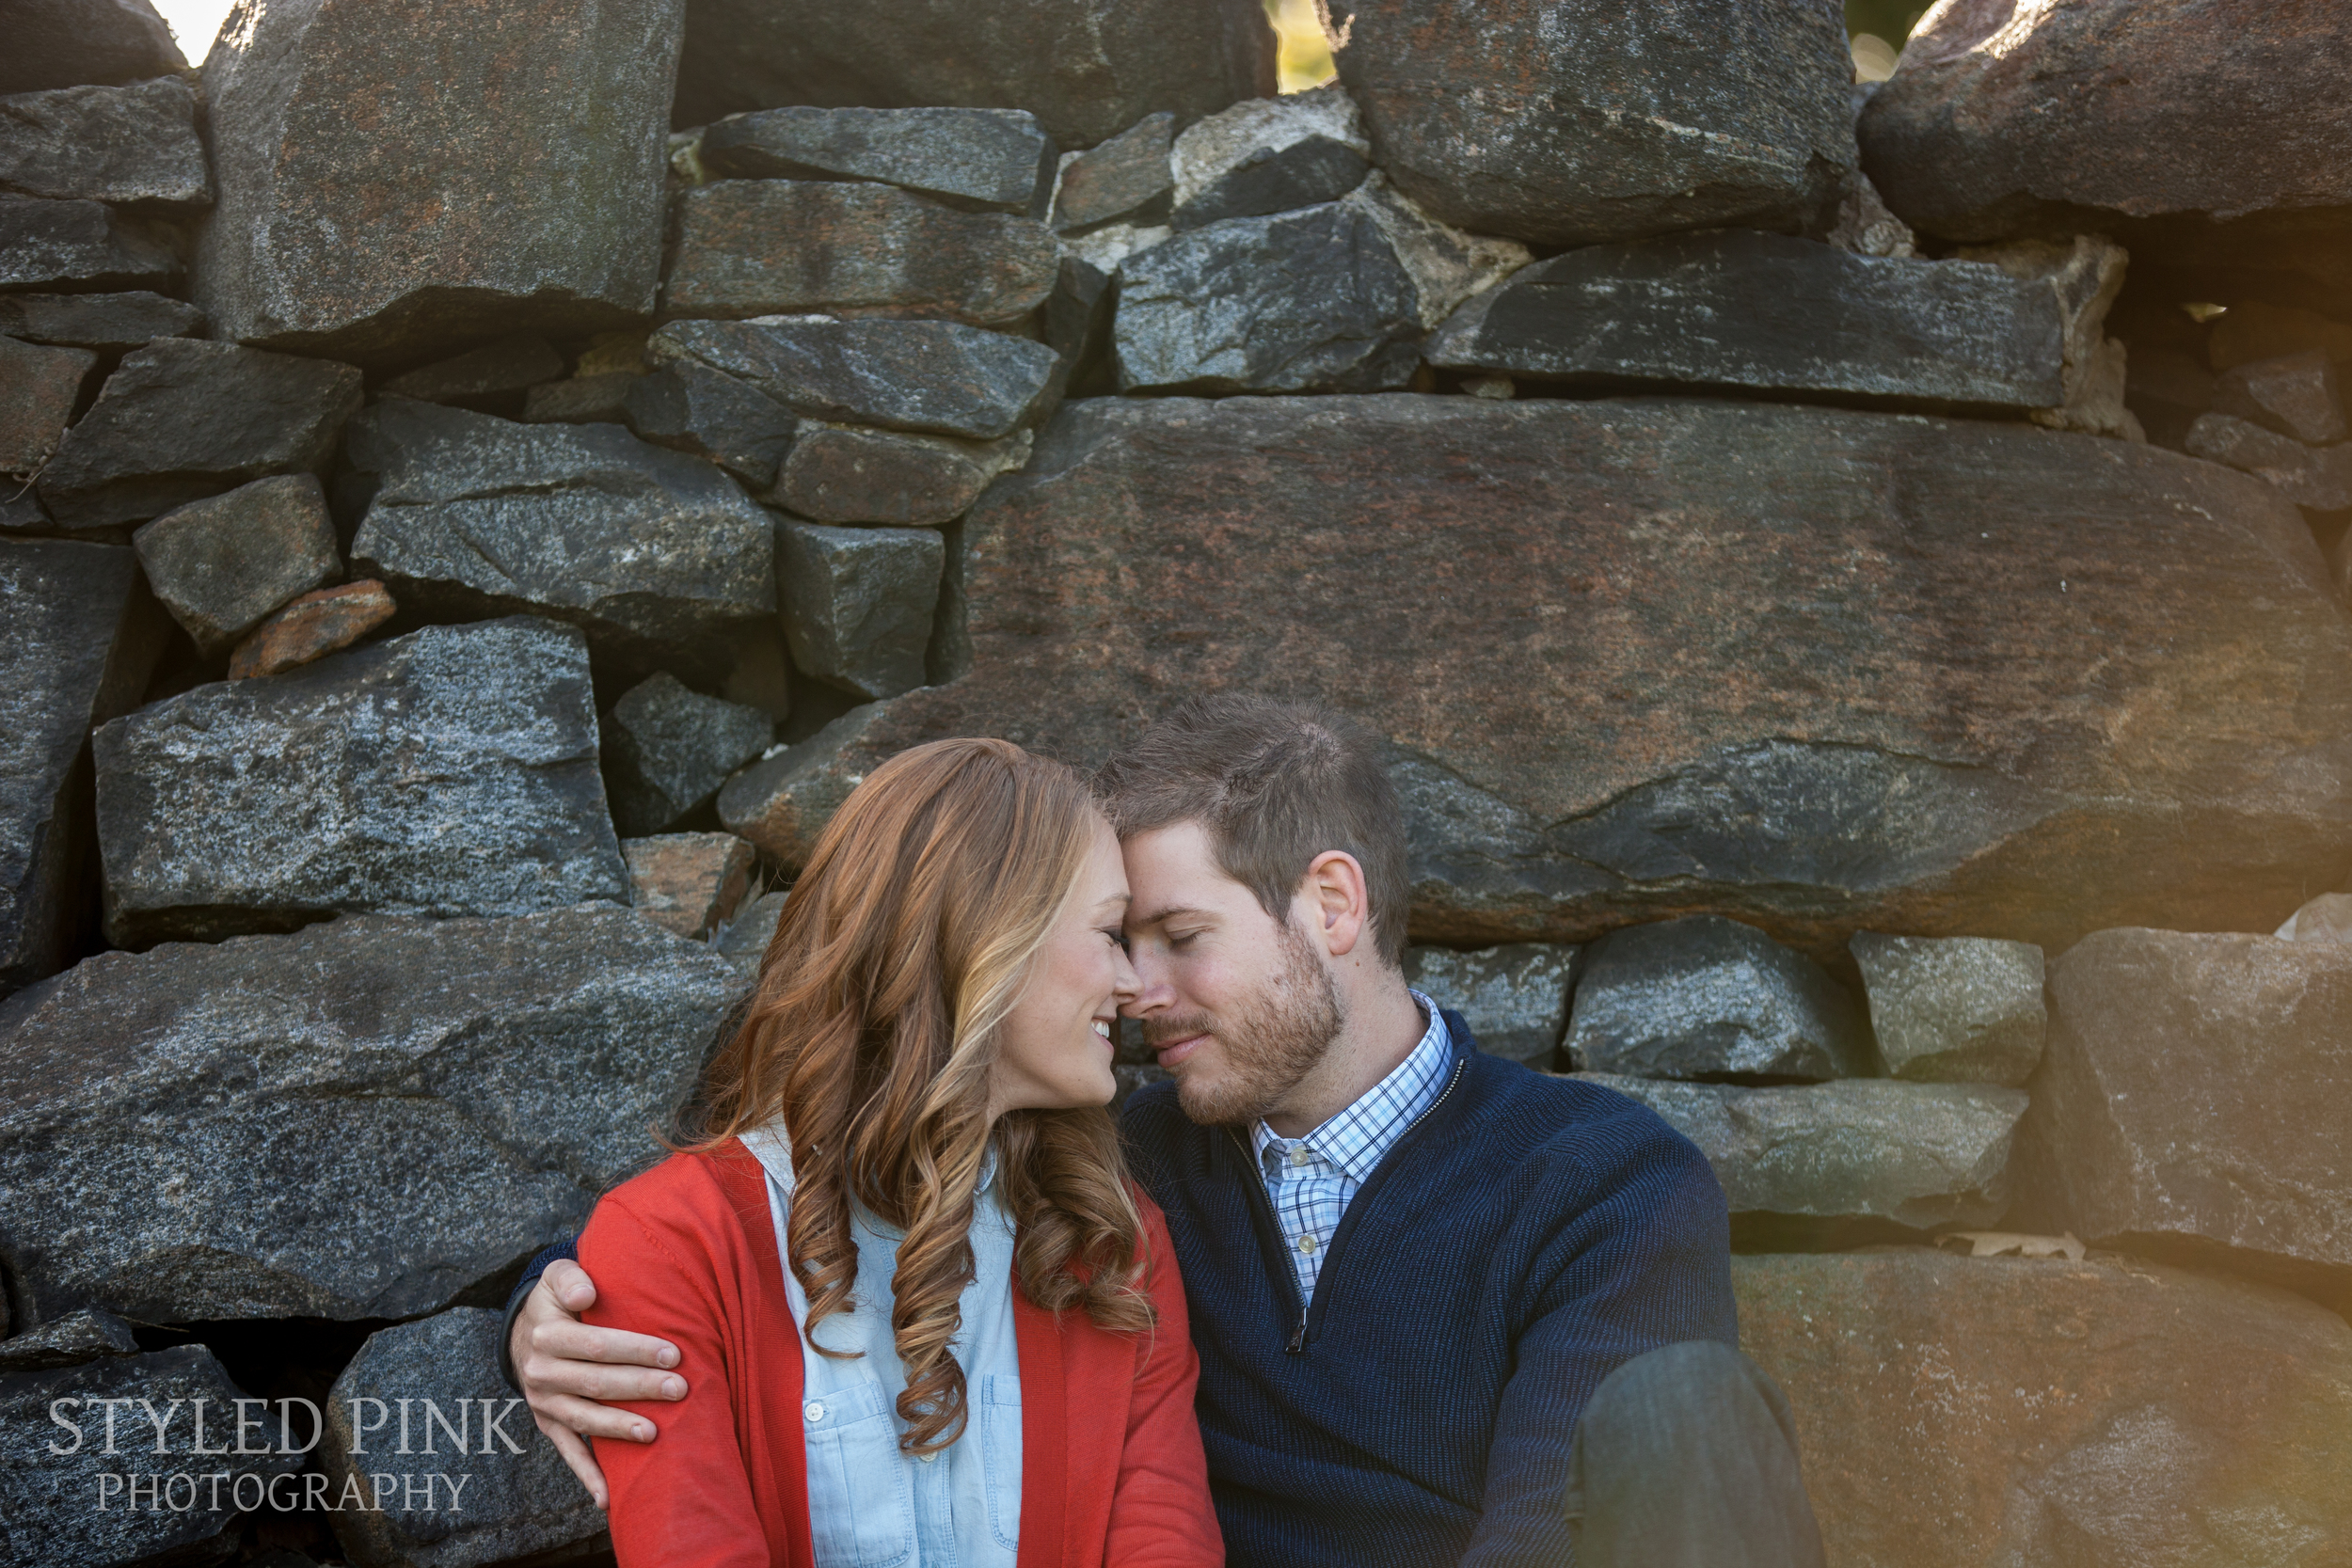 styled-pink-brandywine-state-park-engagement-1